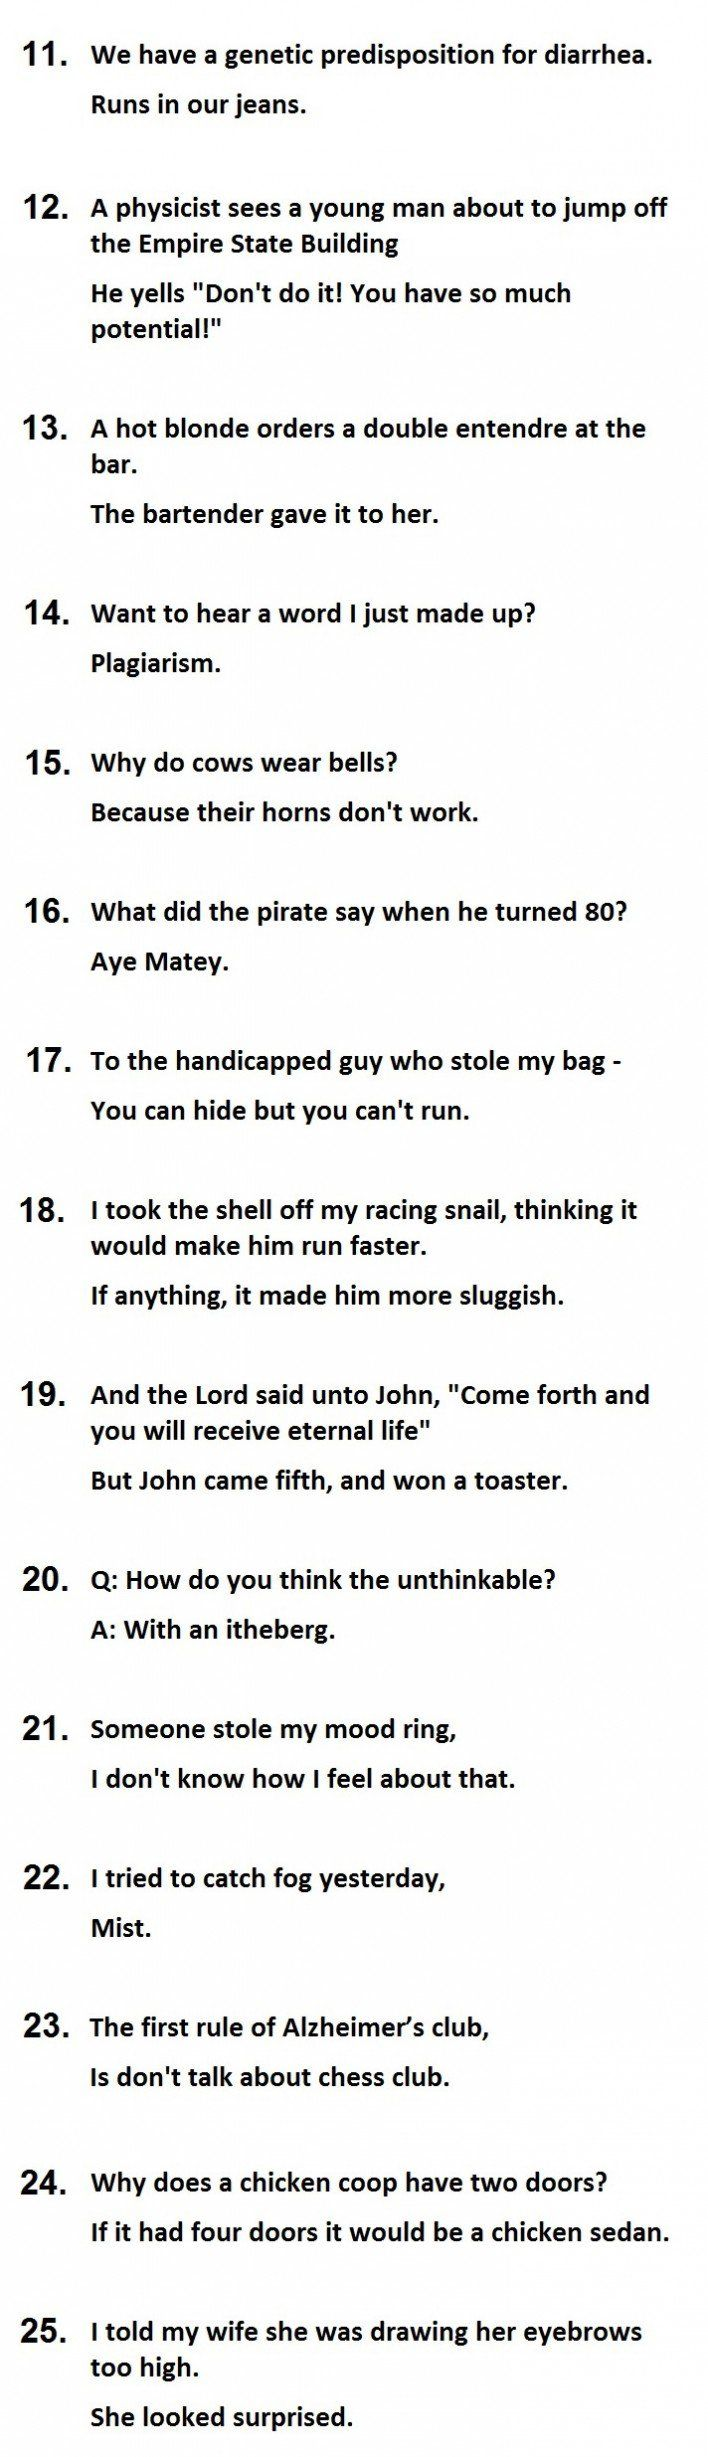 Image of: Handy The 25 Best Twoline Jokes Ever 14 Is Priceless One Line Pinterest The 25 Best Twoline Jokes Ever 14 Is Priceless ᴥ Oh My Gosh